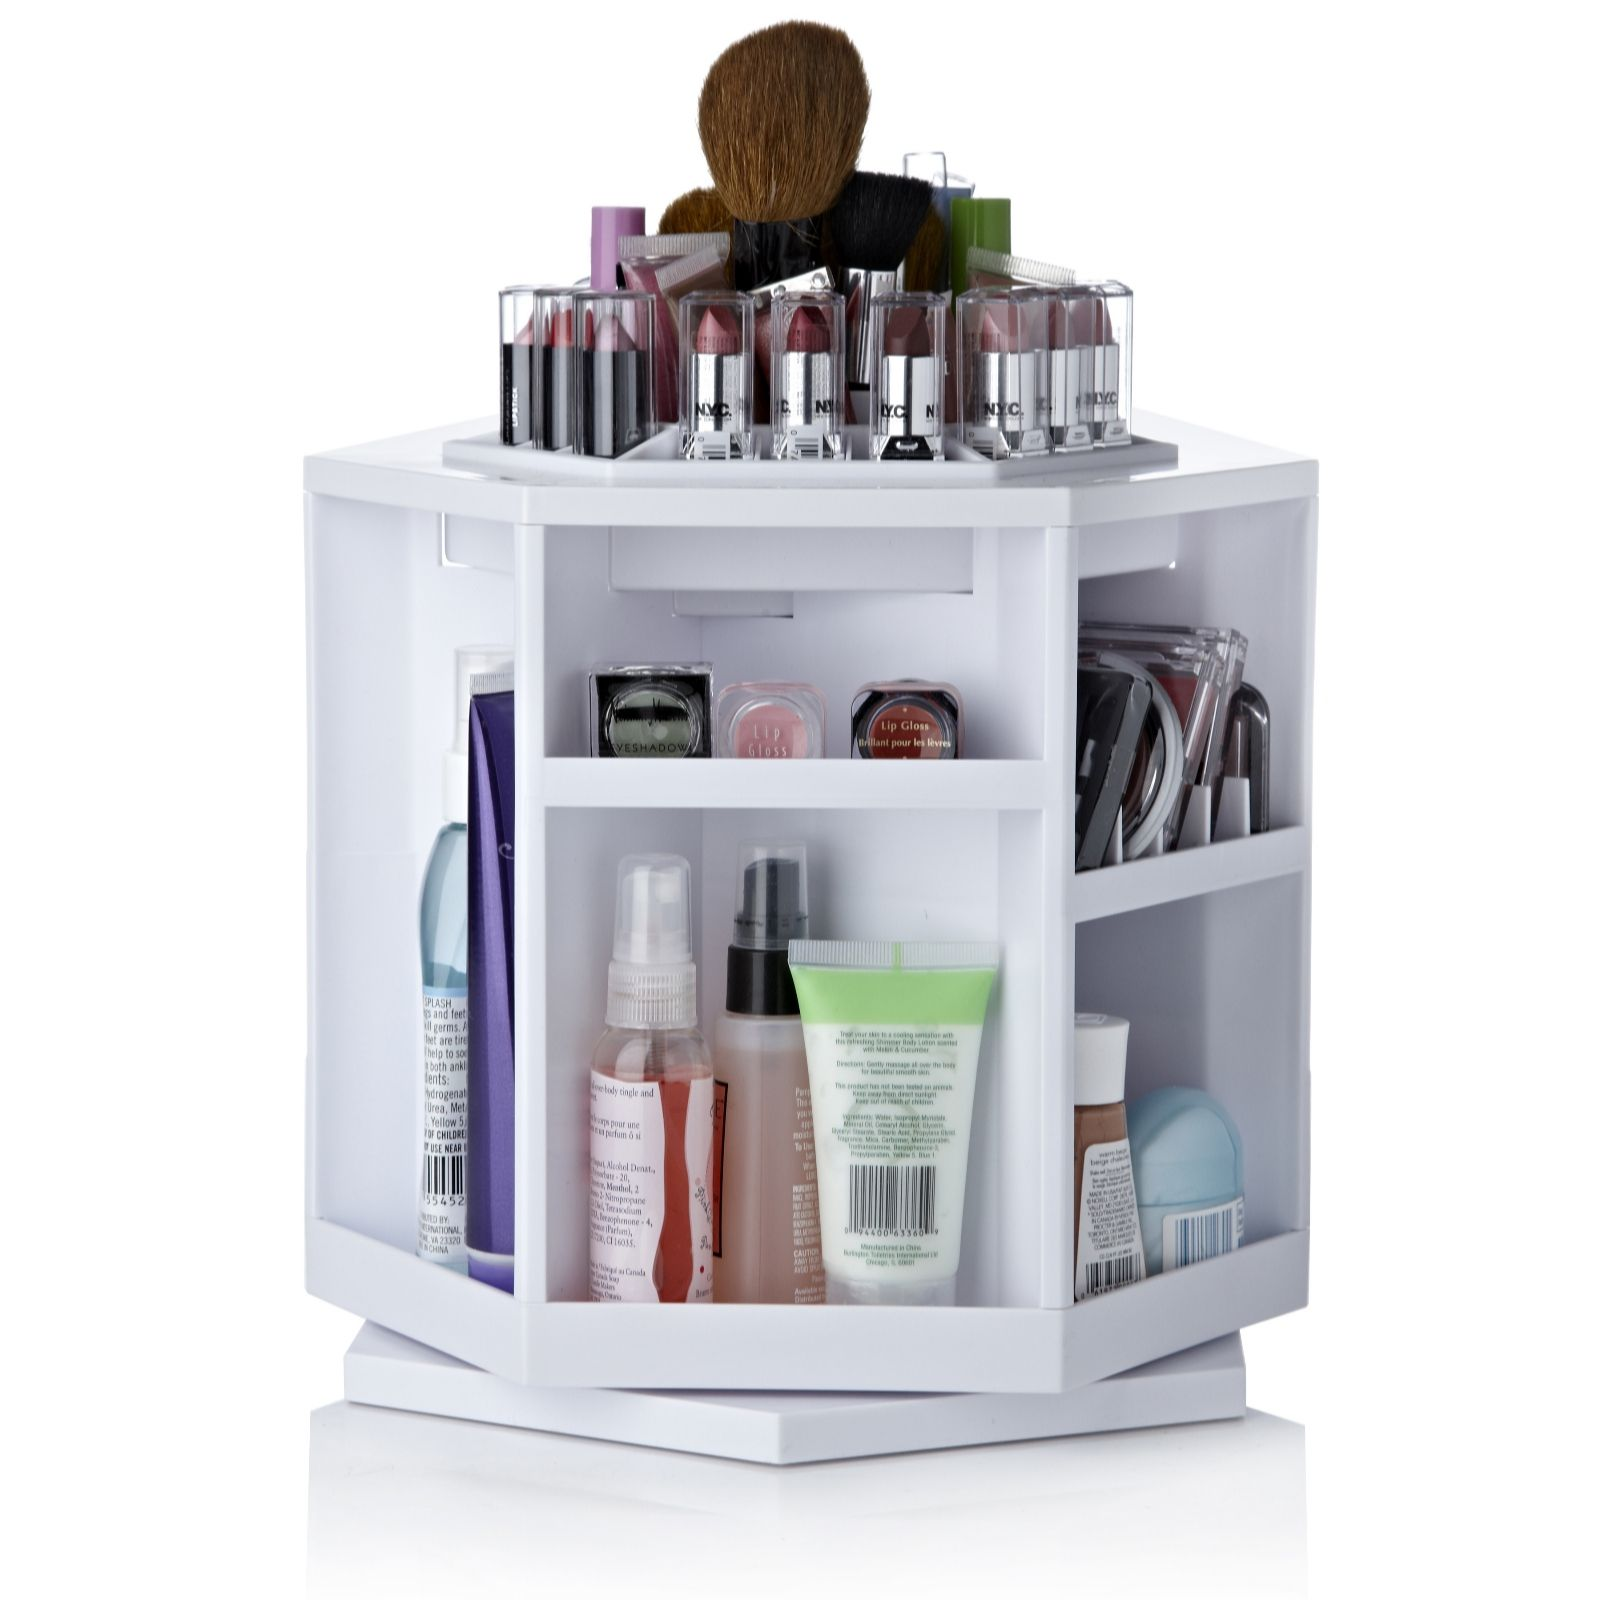 5 Super Handy Makeup Storage Ideas Shinyshiny